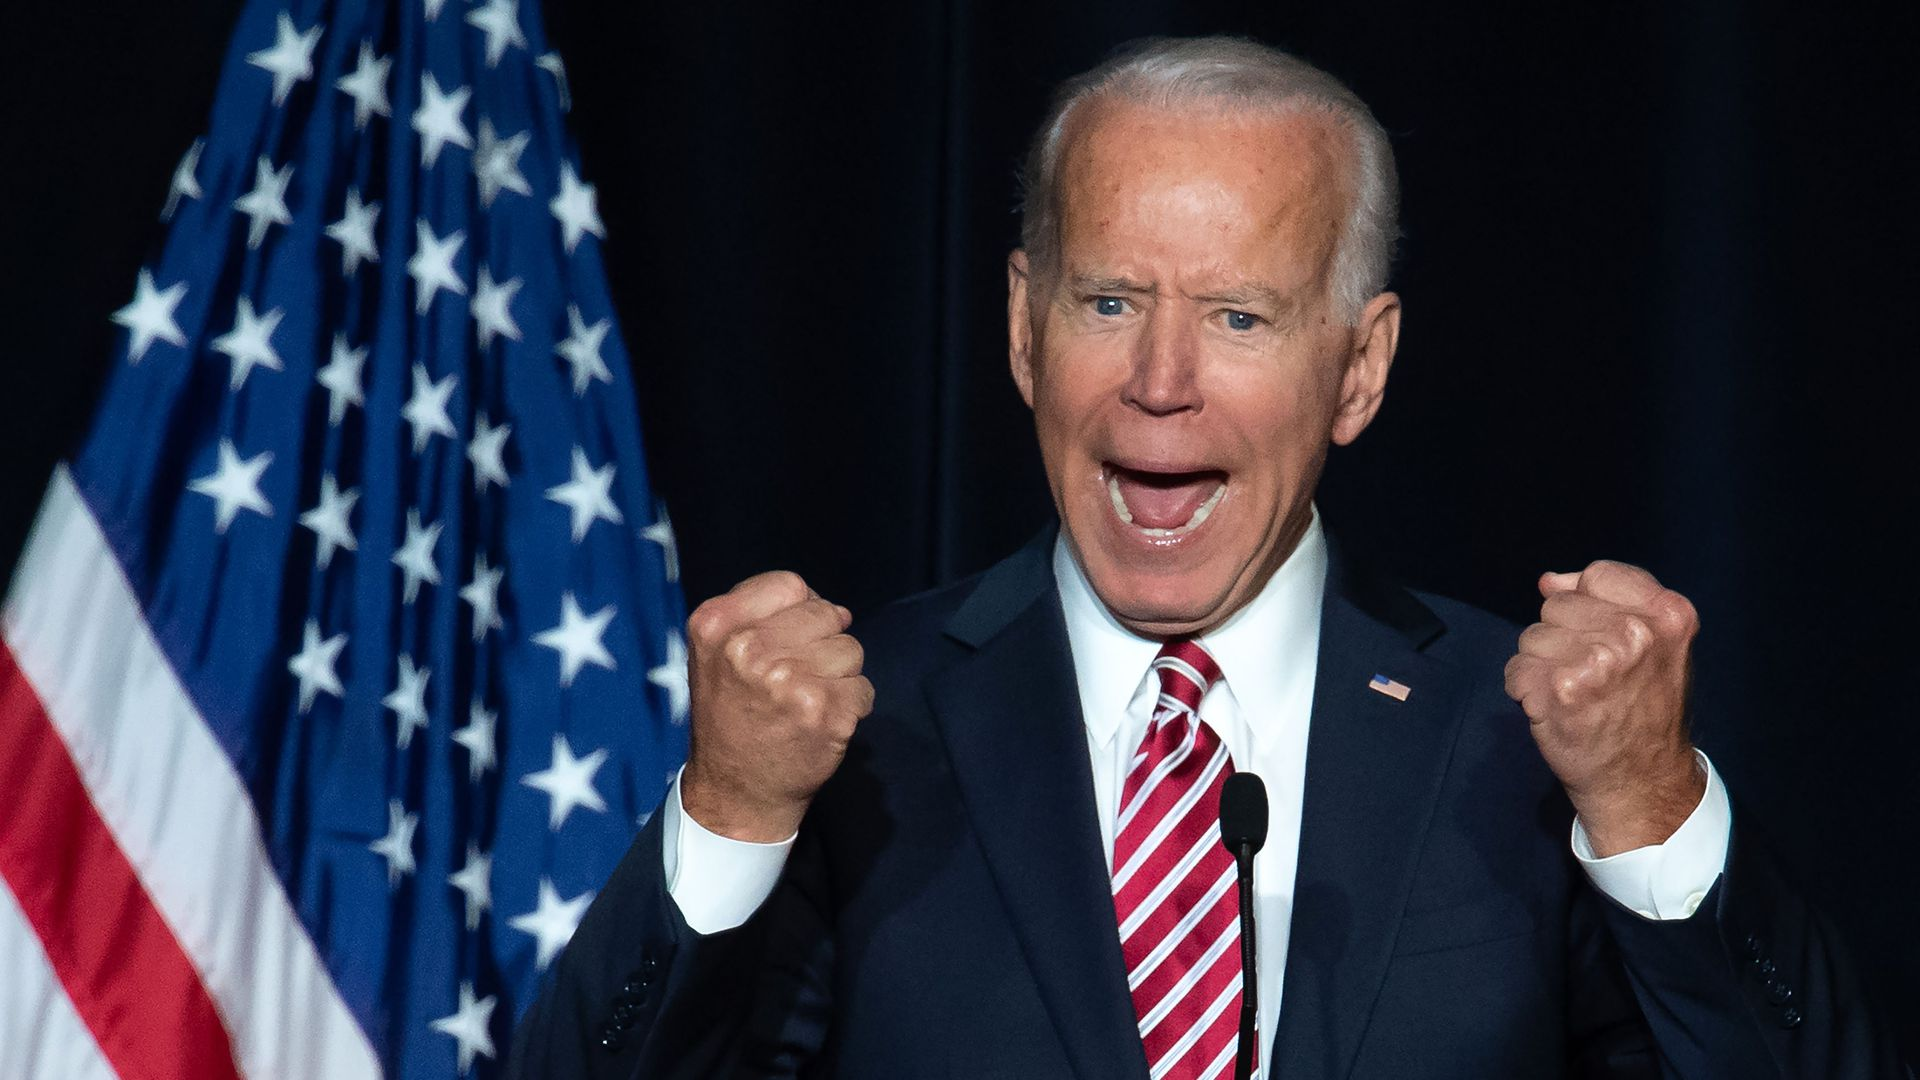 Former Vice President Joe Biden is an early front-runner for the Democratic presidential nomination in the latest ABC News/Washington Post poll.